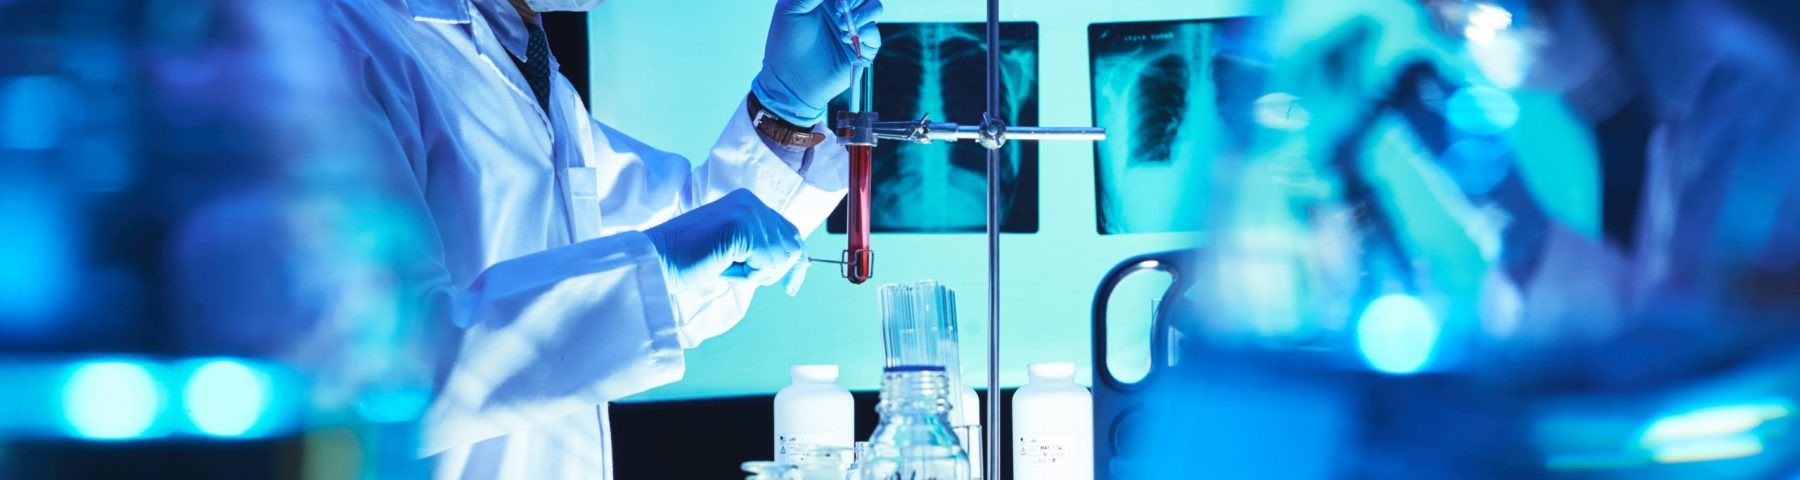 Chemist adding reagent in test-tube